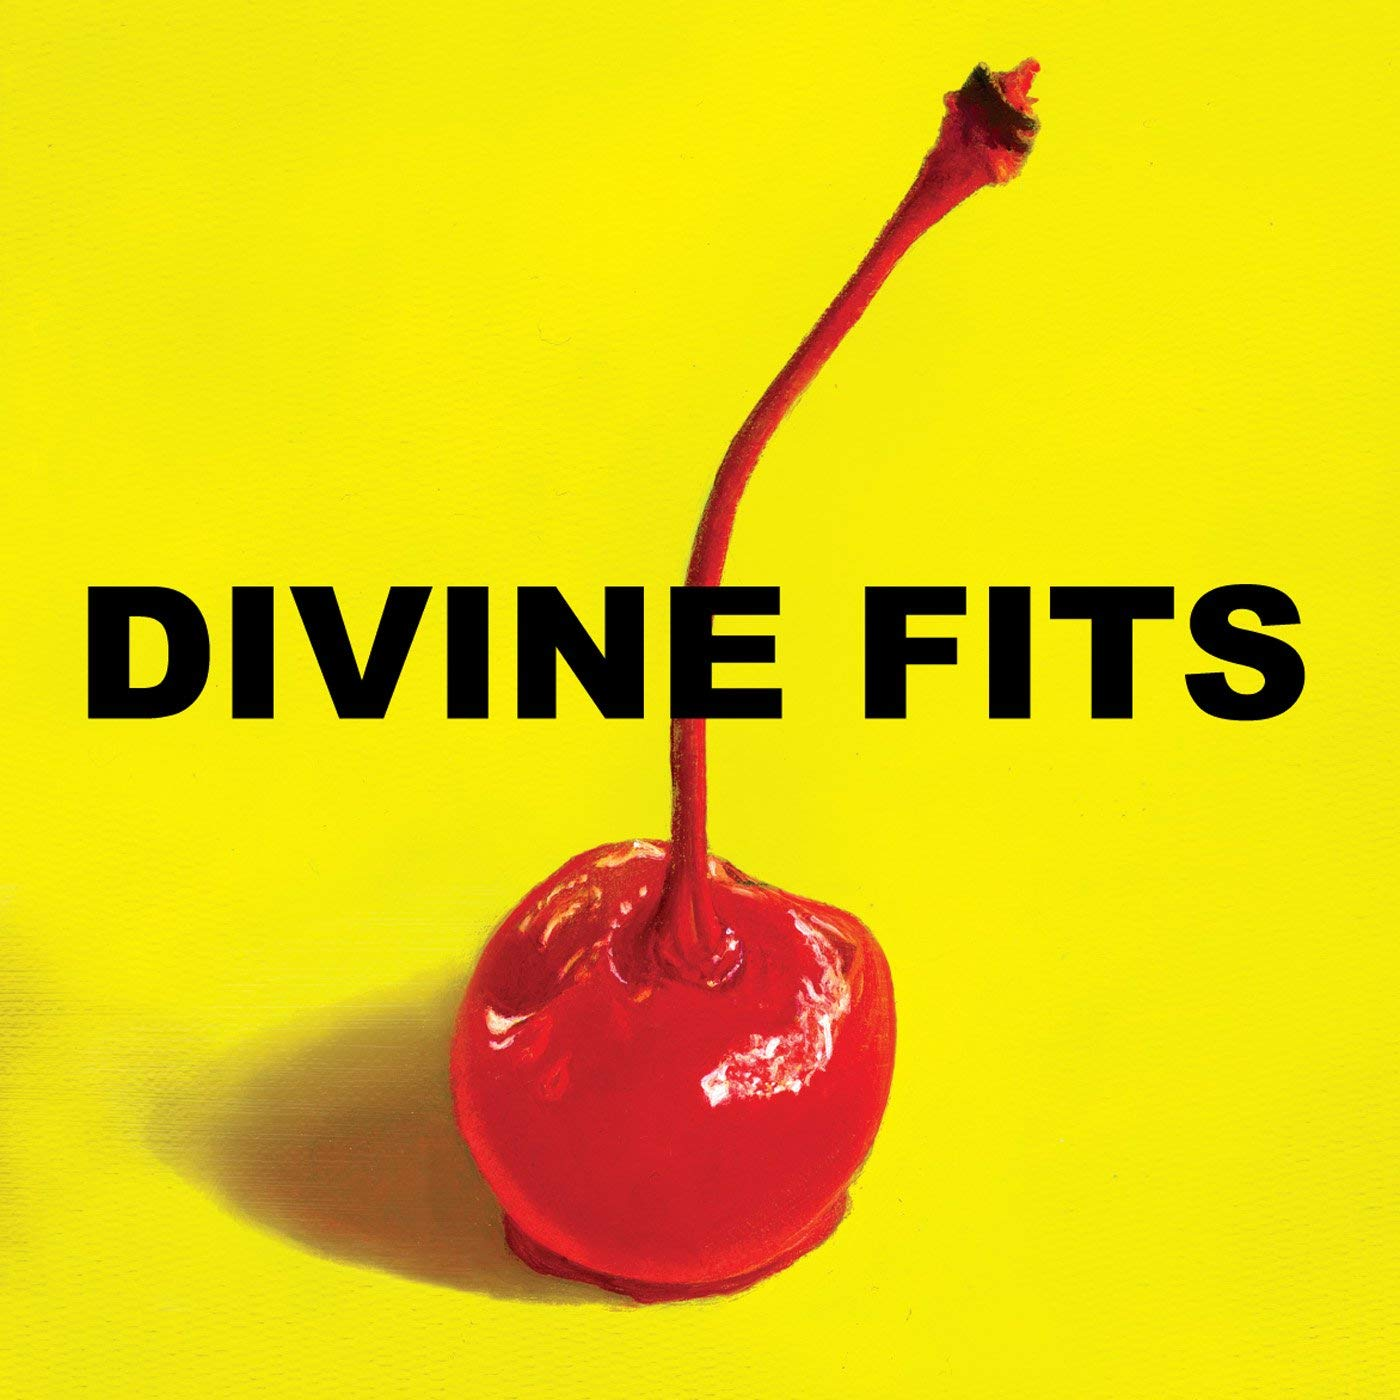 DIVINE FITS   A Thing Called Divine Fits, 2012, Nick Launay, 43:02